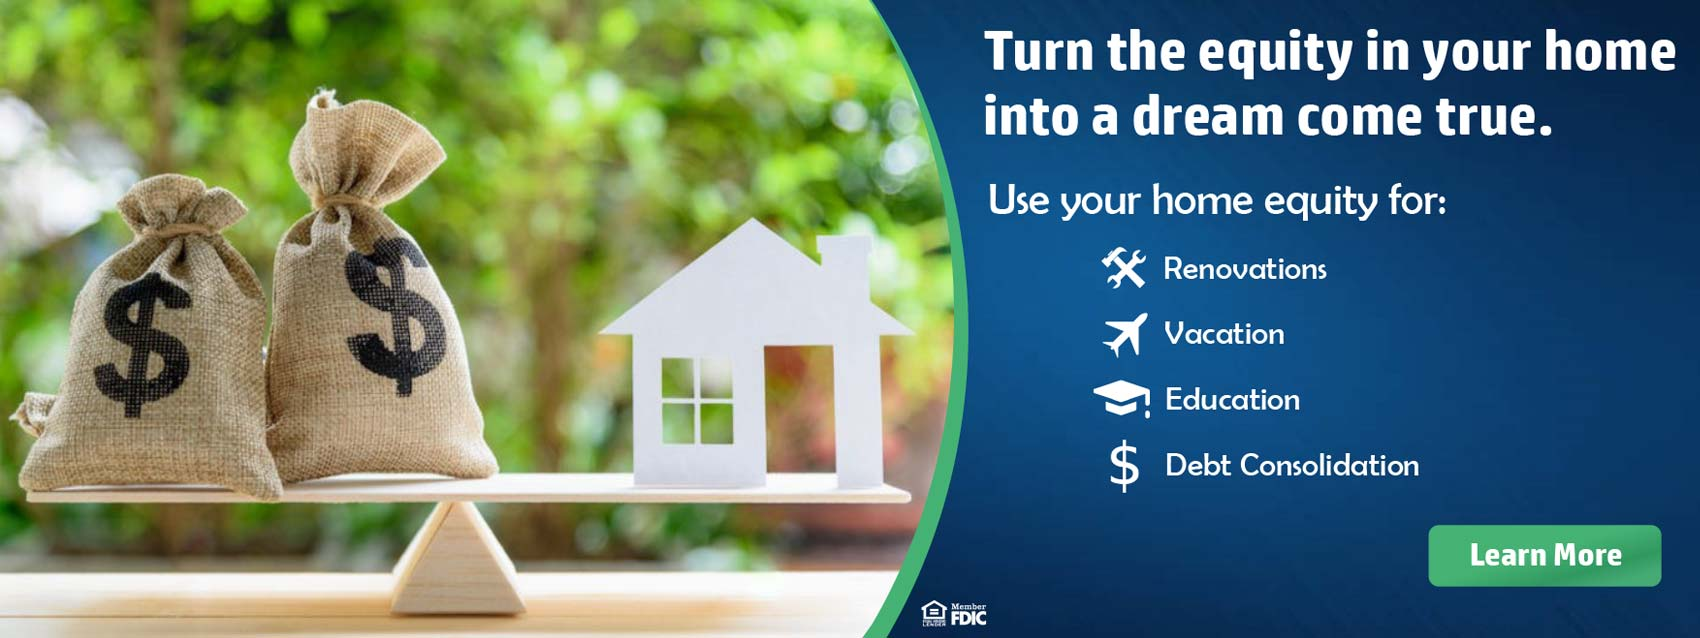 Turn the equity in your home into a dream come true.